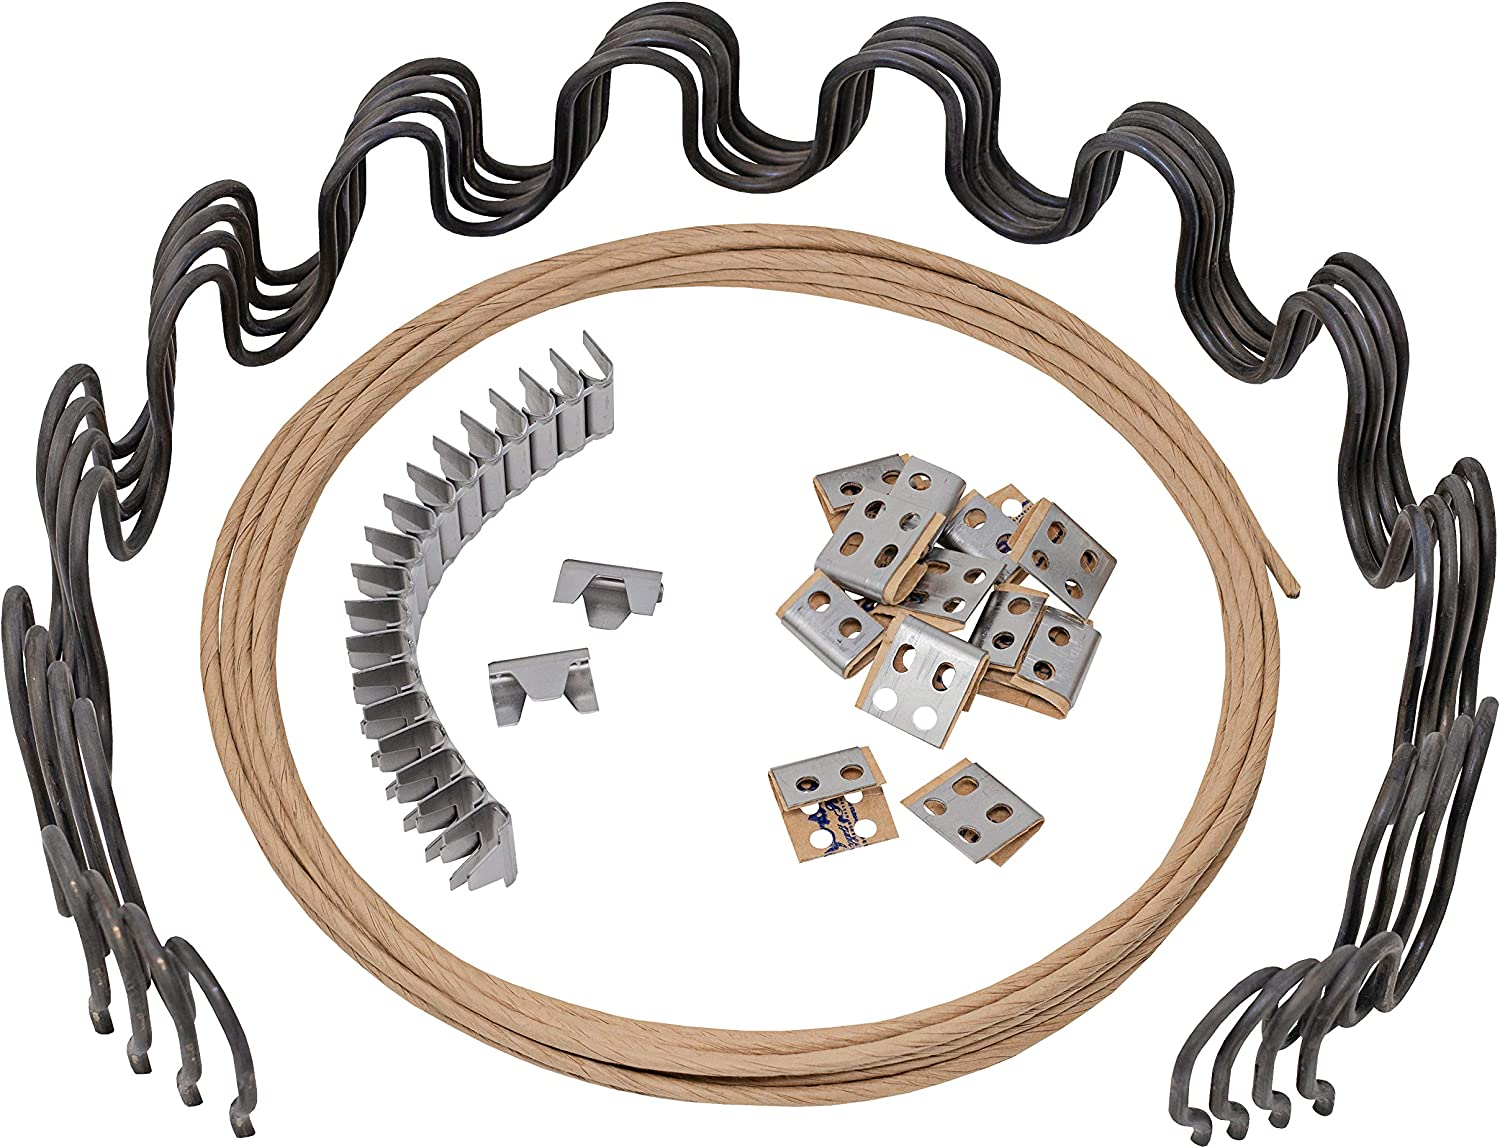 "House2Home 25"" Sofa Upholstery Spring Replacement Kit 4pk Springs, Clips, Wire for Furniture Chair Couch Repair, Includes Instructions"